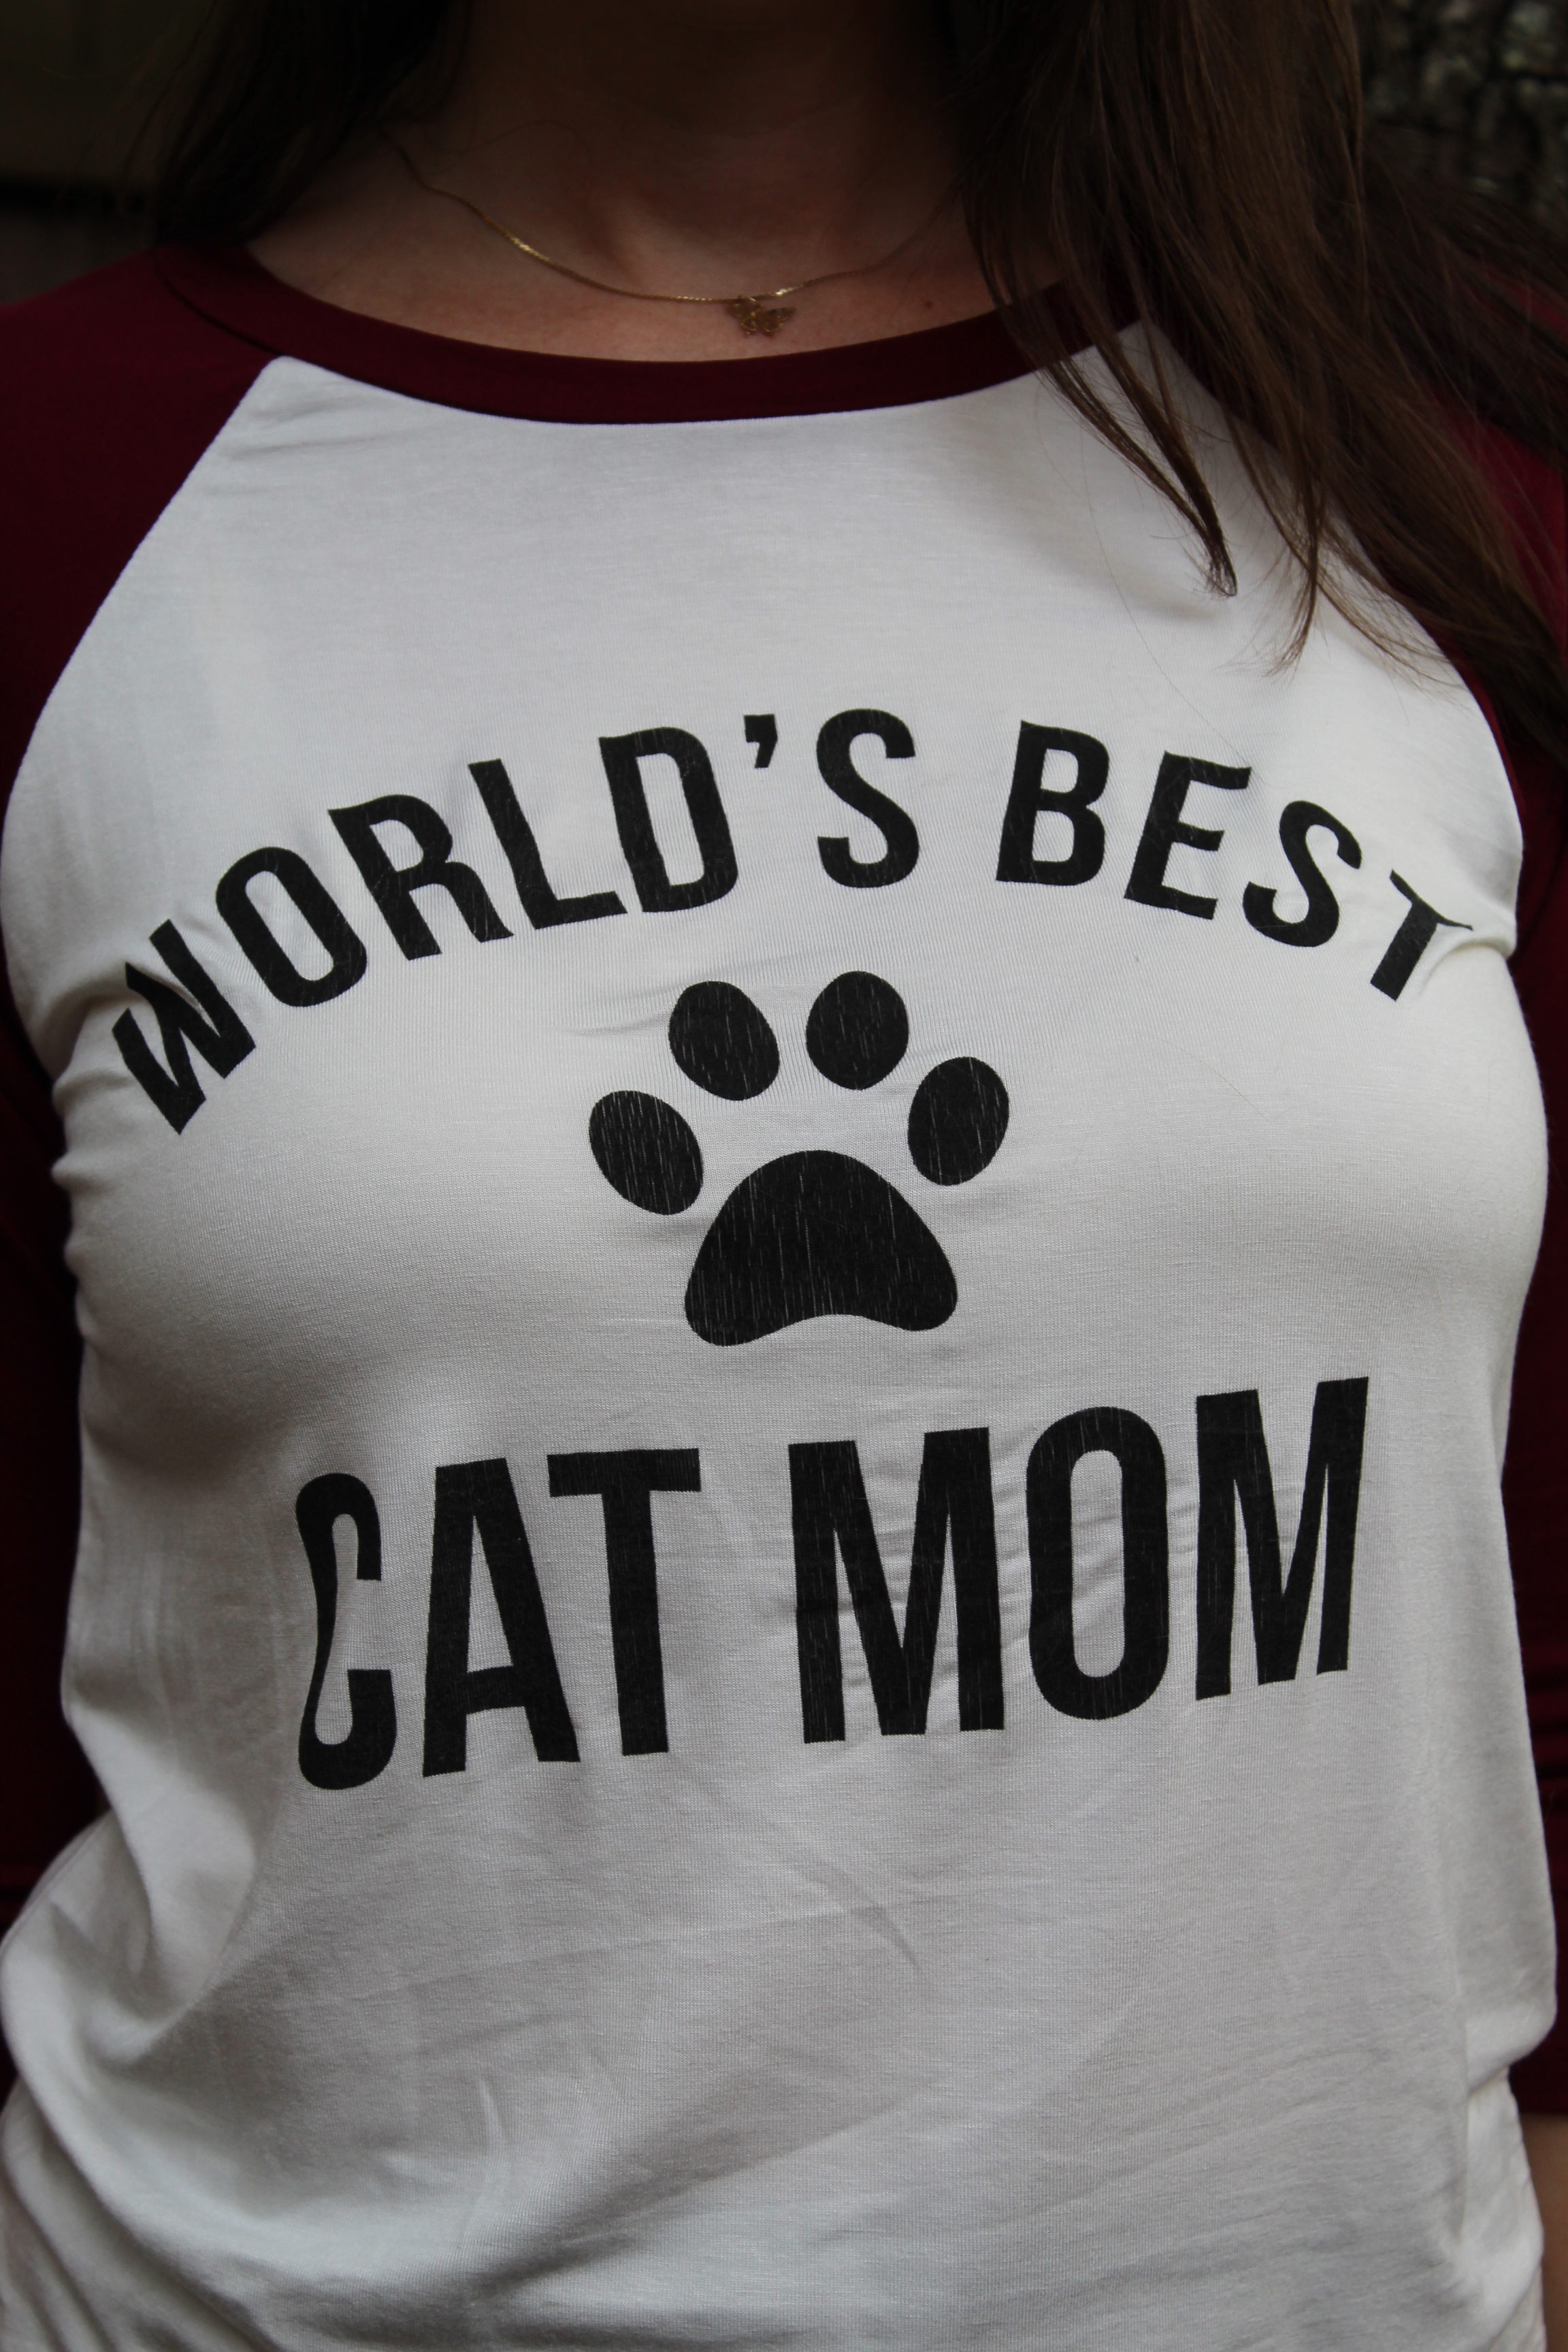 'World's Best Cat Mom' Graphic Tshirt